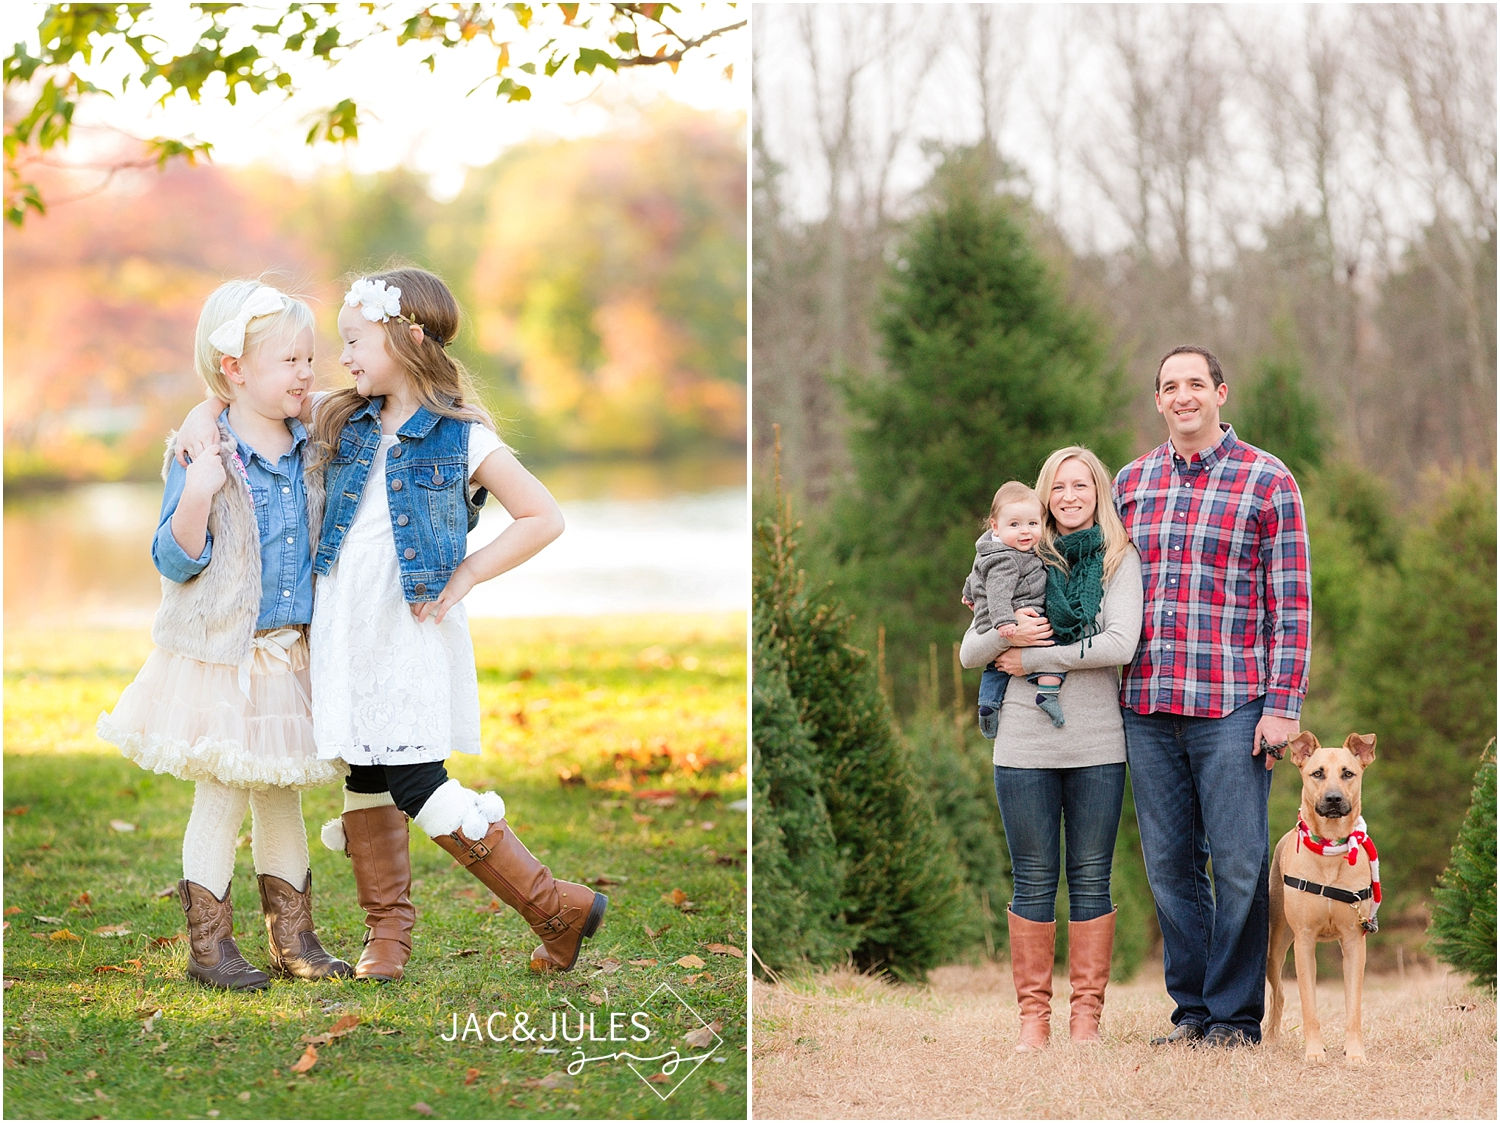 jacnjules photographs family at divine park in spring lake nj for Christmas photos